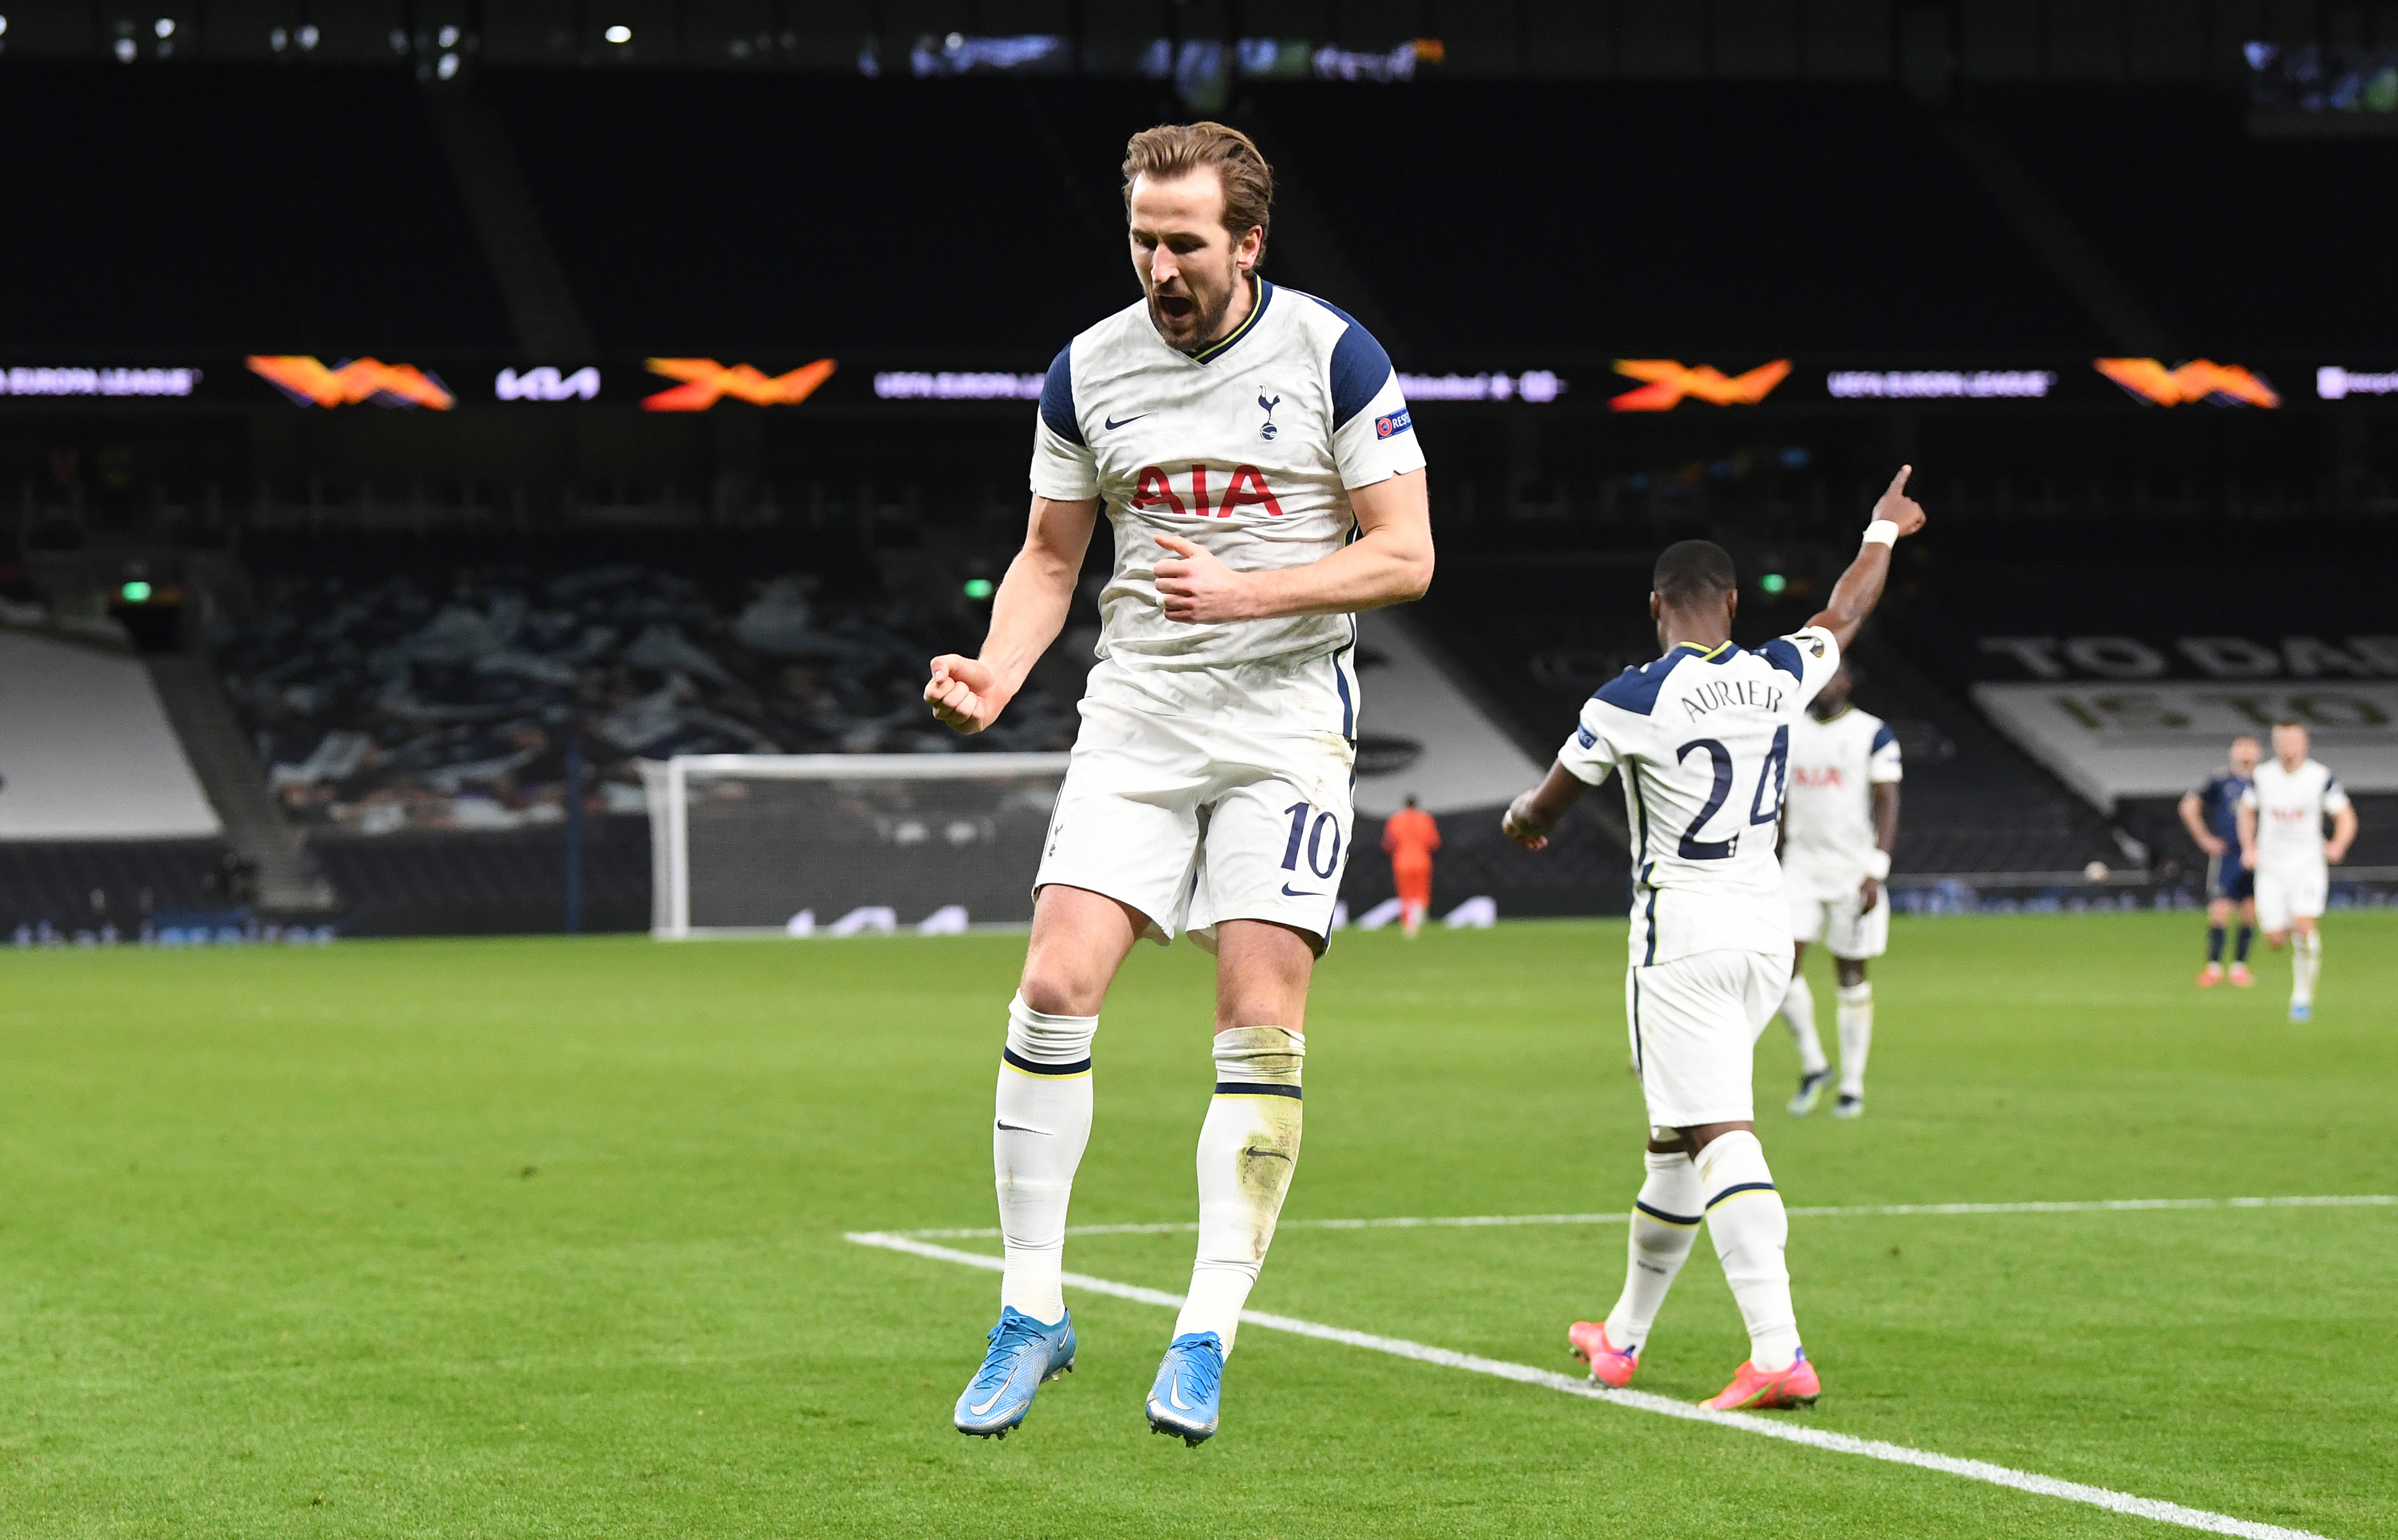 <p>Tottenham Hotspur's Harry Kane celebrates scoring their side's second goal of the game during the UEFA Europa League Round of Sixteen match at the Tottenham Hotspur Stadium, London. Picture date: Thursday March 11, 2021.</p>